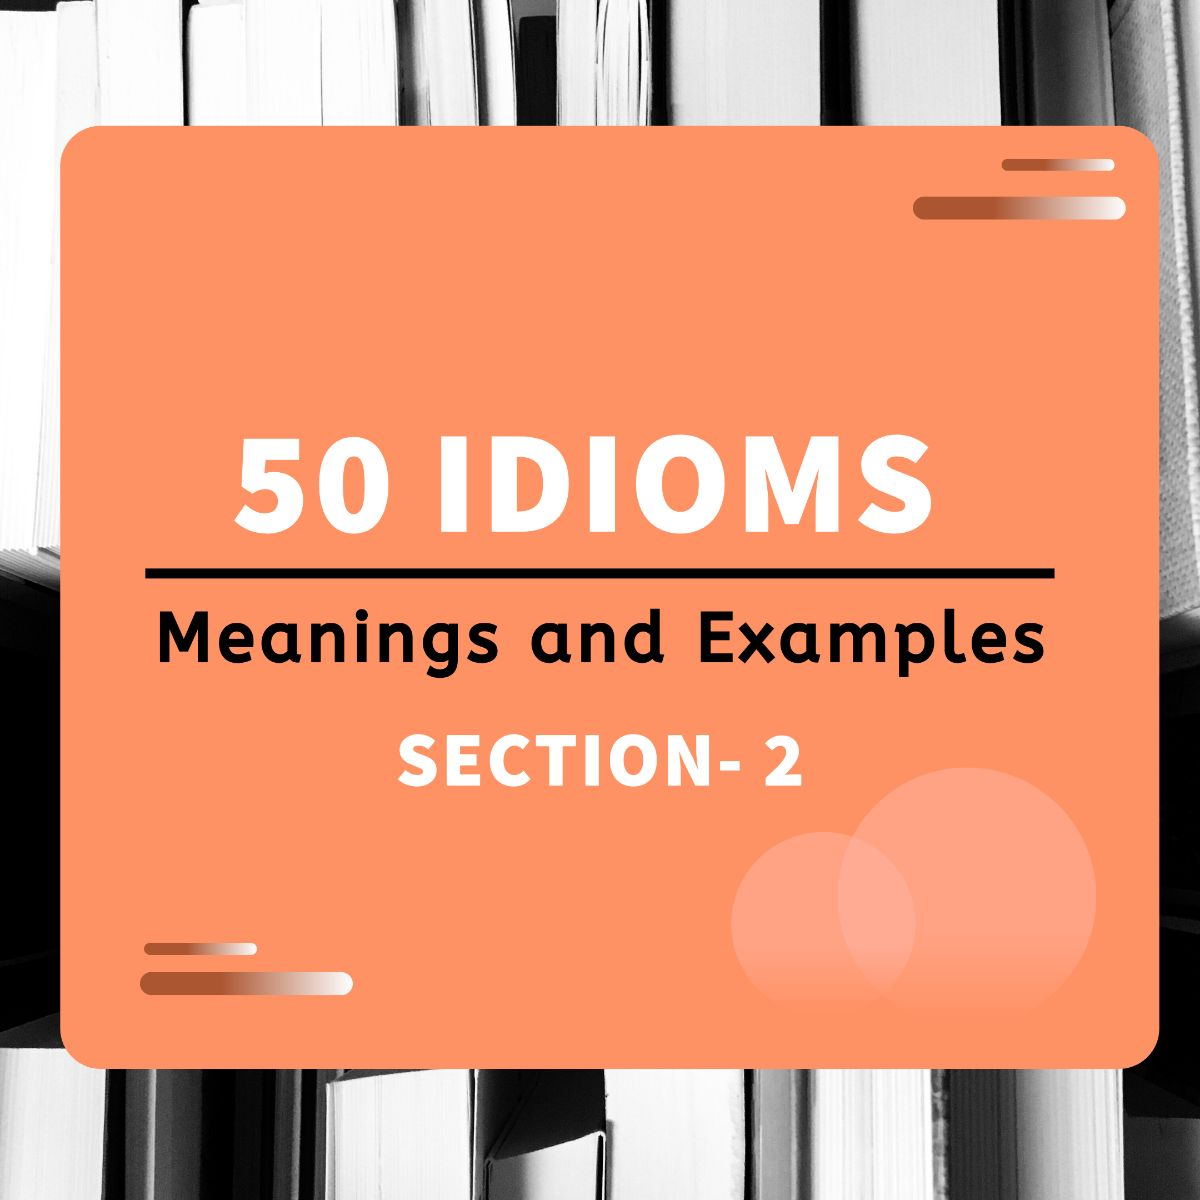 50 idioms and their meanings with Examples- 2